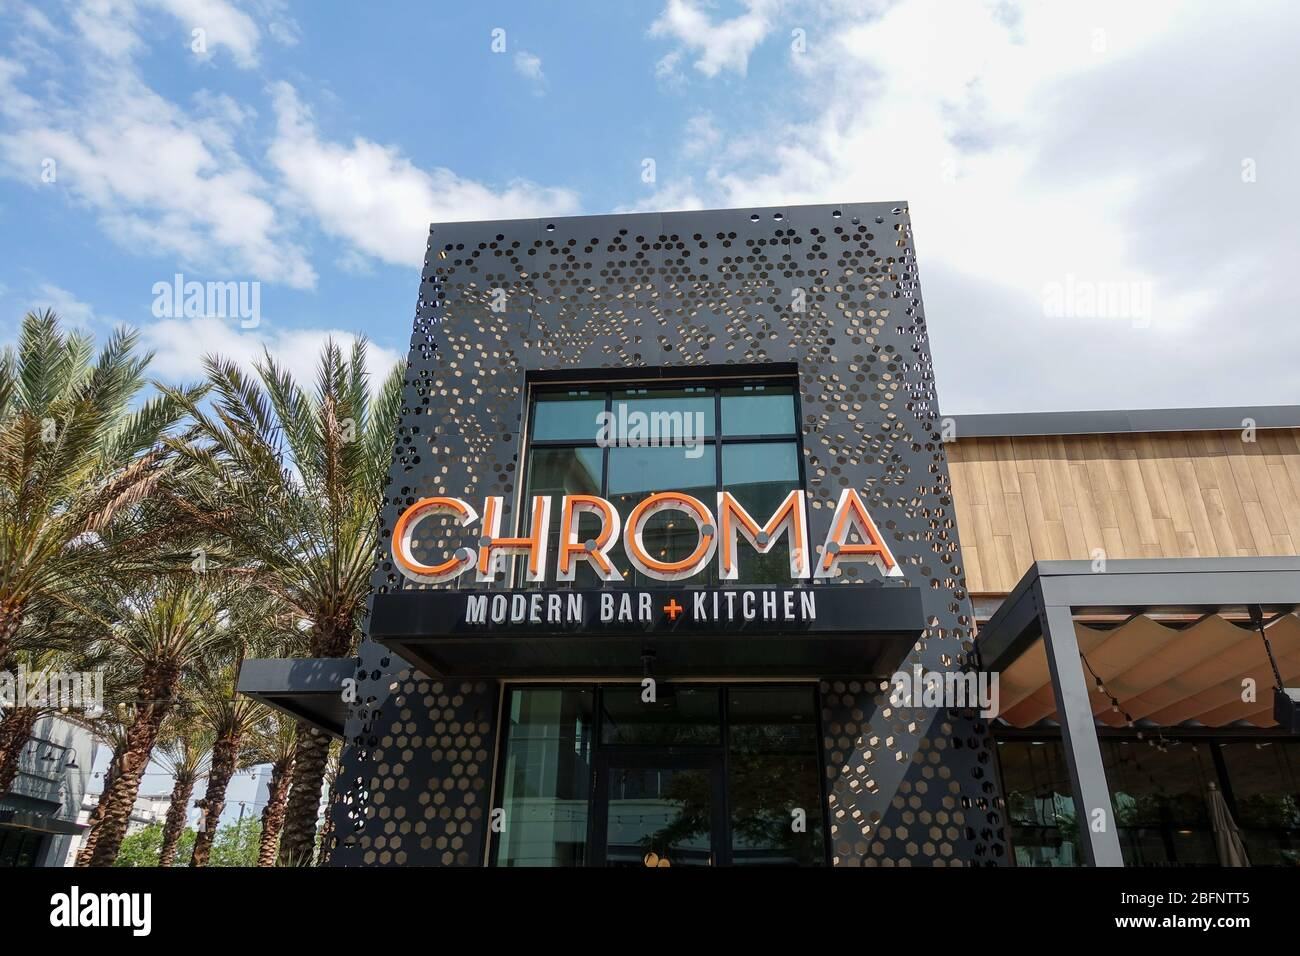 Orlando Fl Usa 4 11 20 The Exterior Of The Small Plate Modern Restaurant And Bar Chroma In Laureate Park At Lake Nona In Orlando Fl Usa Stock Photo Alamy